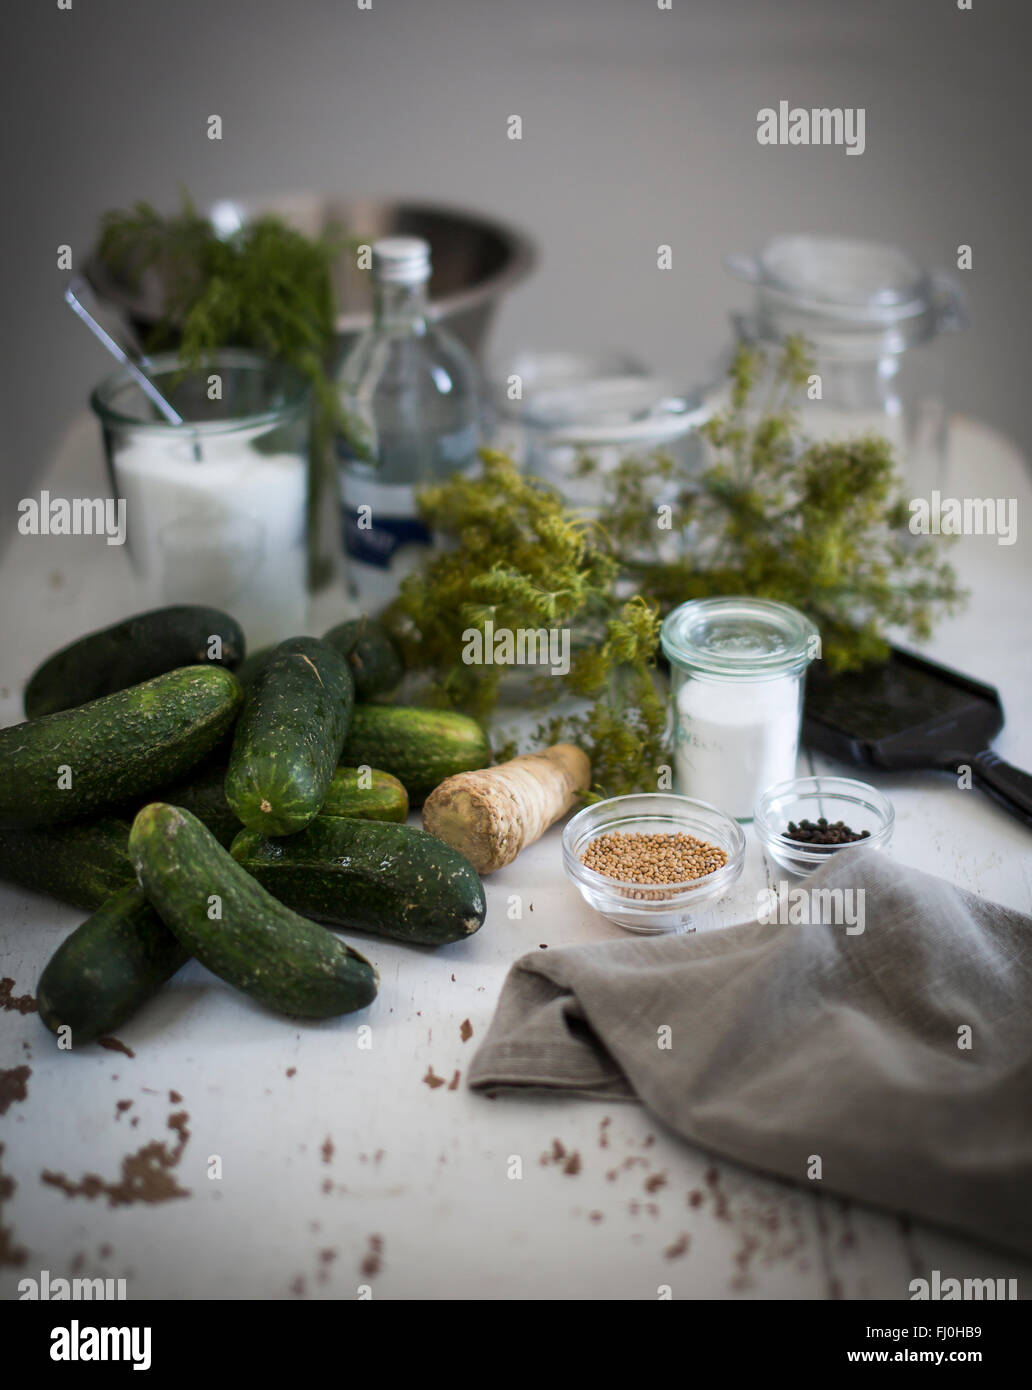 Ingredients for pickled cucumbers on a table - Stock Image